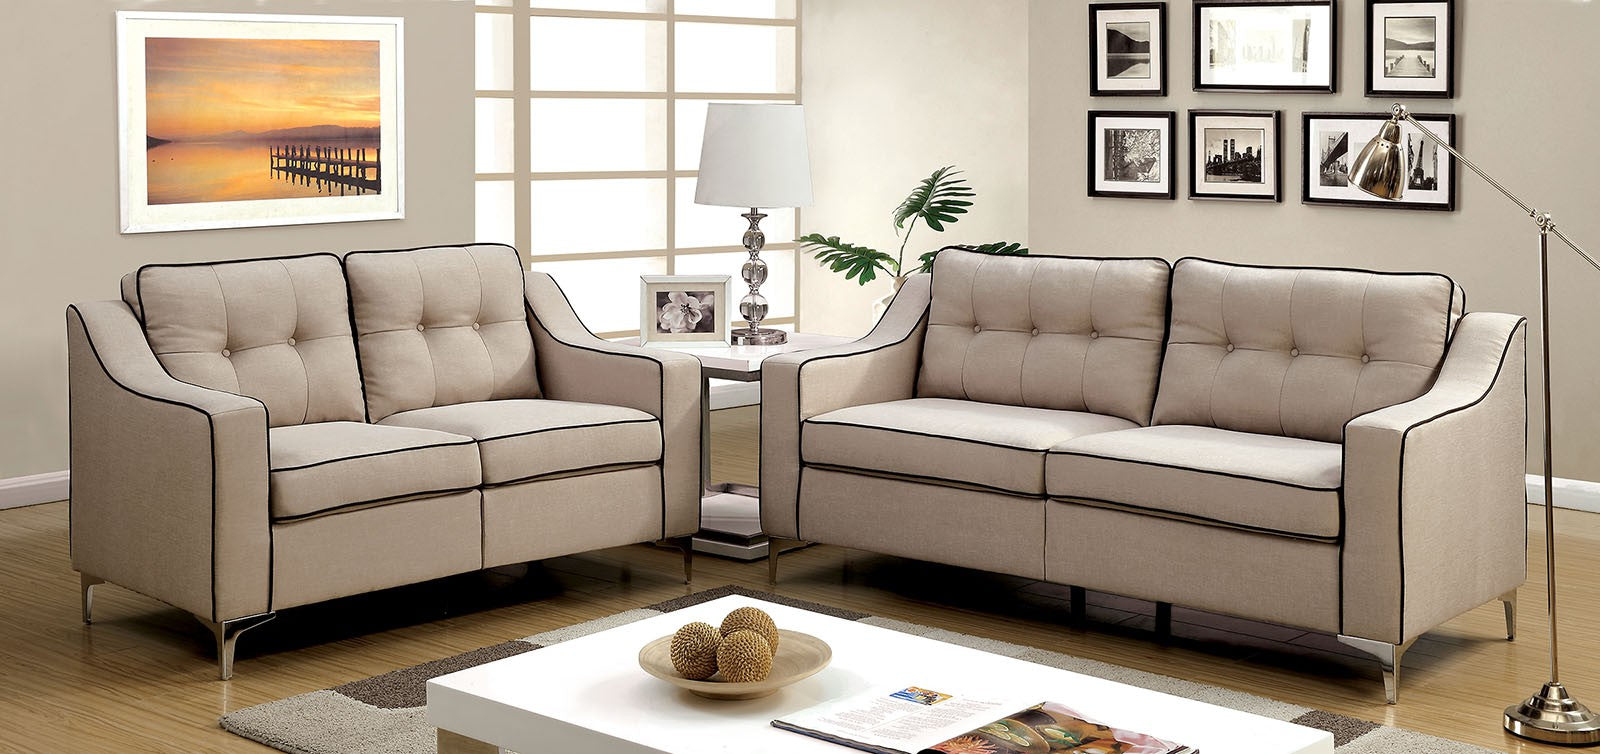 GLENDA 2PC SOFA & LOVESEAT SET